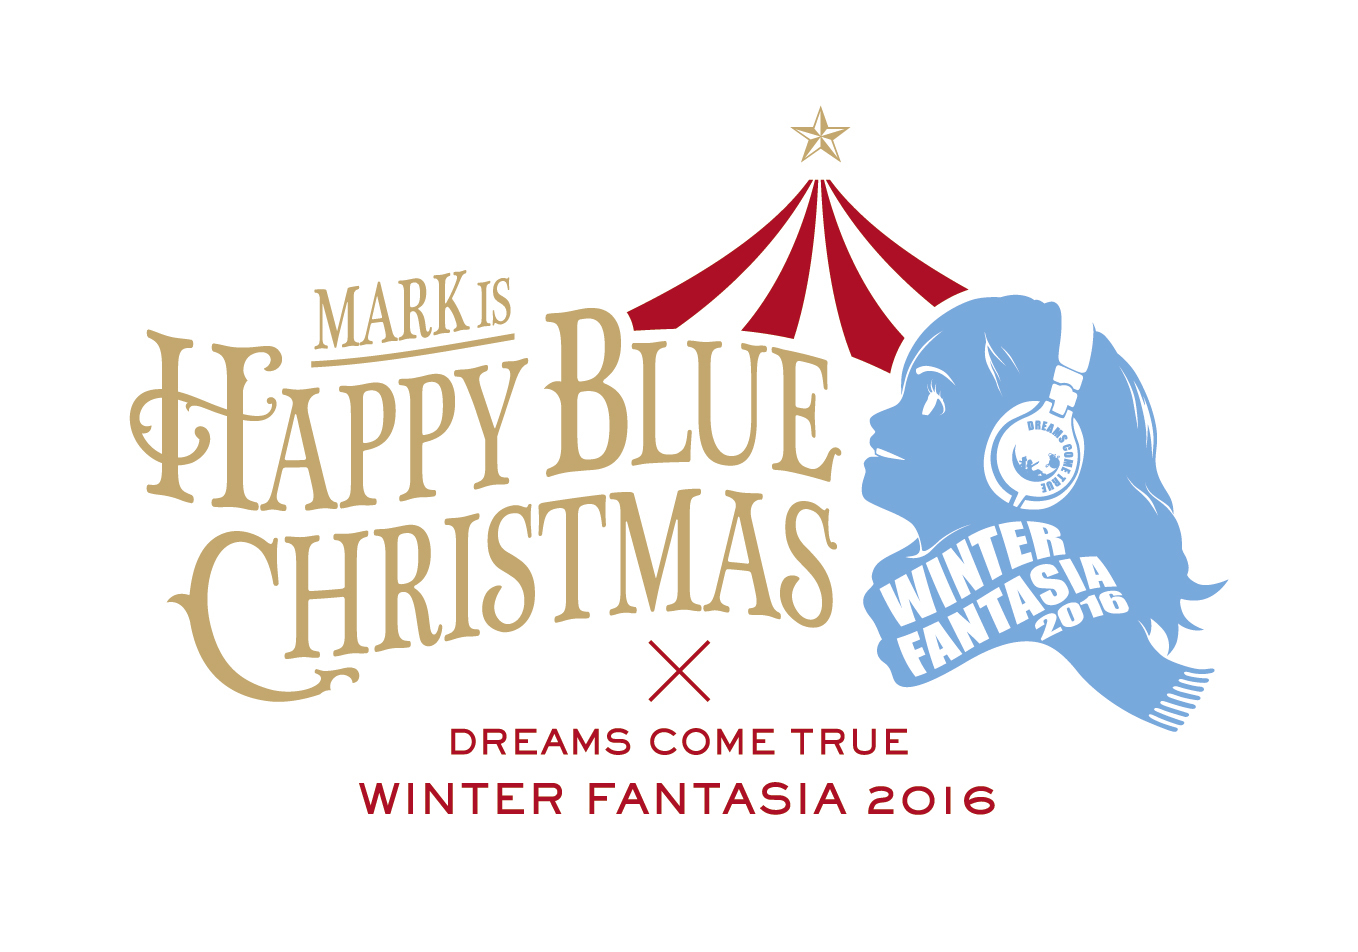 MARK IS Happy Blue Christmas × DREAMS COME TRUE WINTER FANTASIA 2016